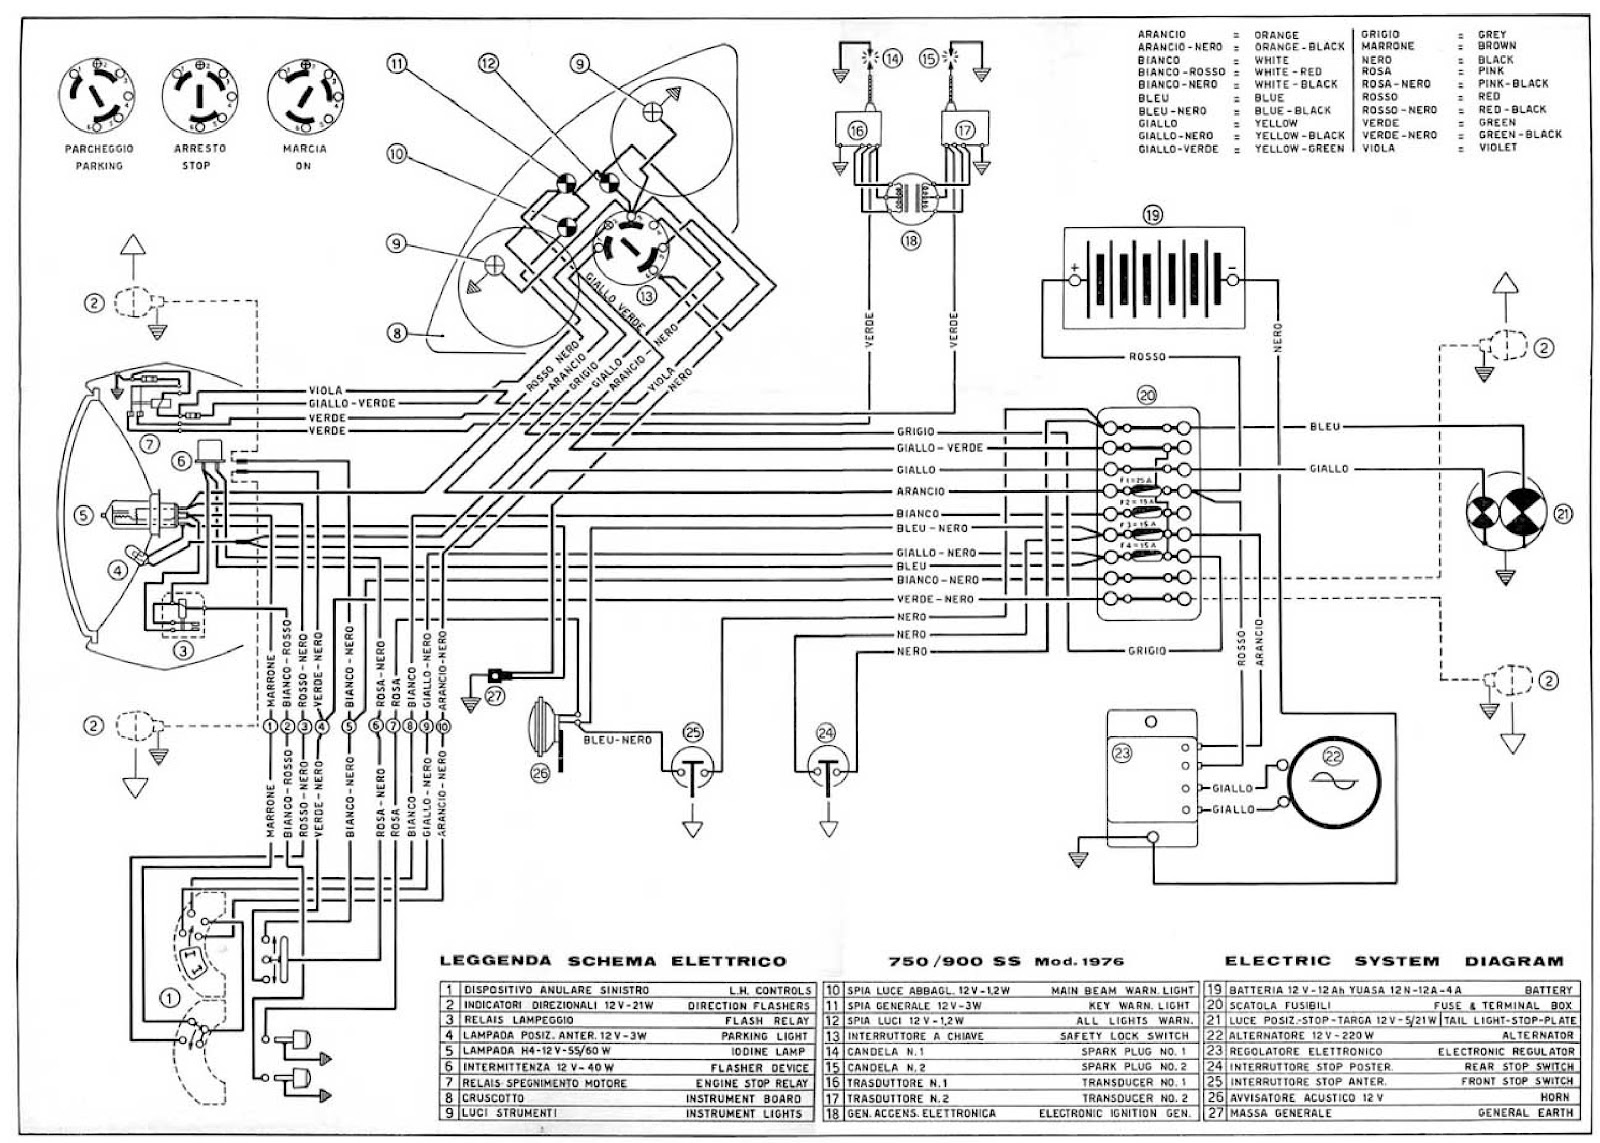 [DIAGRAM] 2000 Ducati Monster Wiring Diagram FULL Version